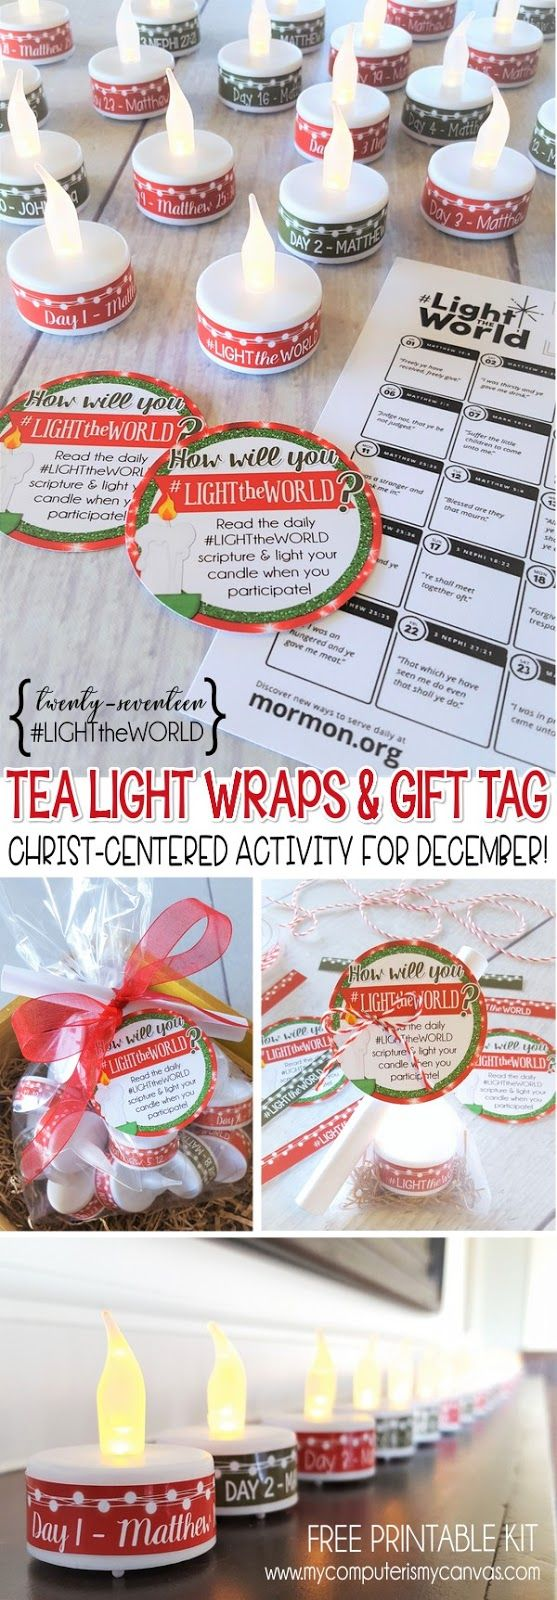 2017 #LIGHTtheWORLD Printables - FREE Tea Light Wraps!